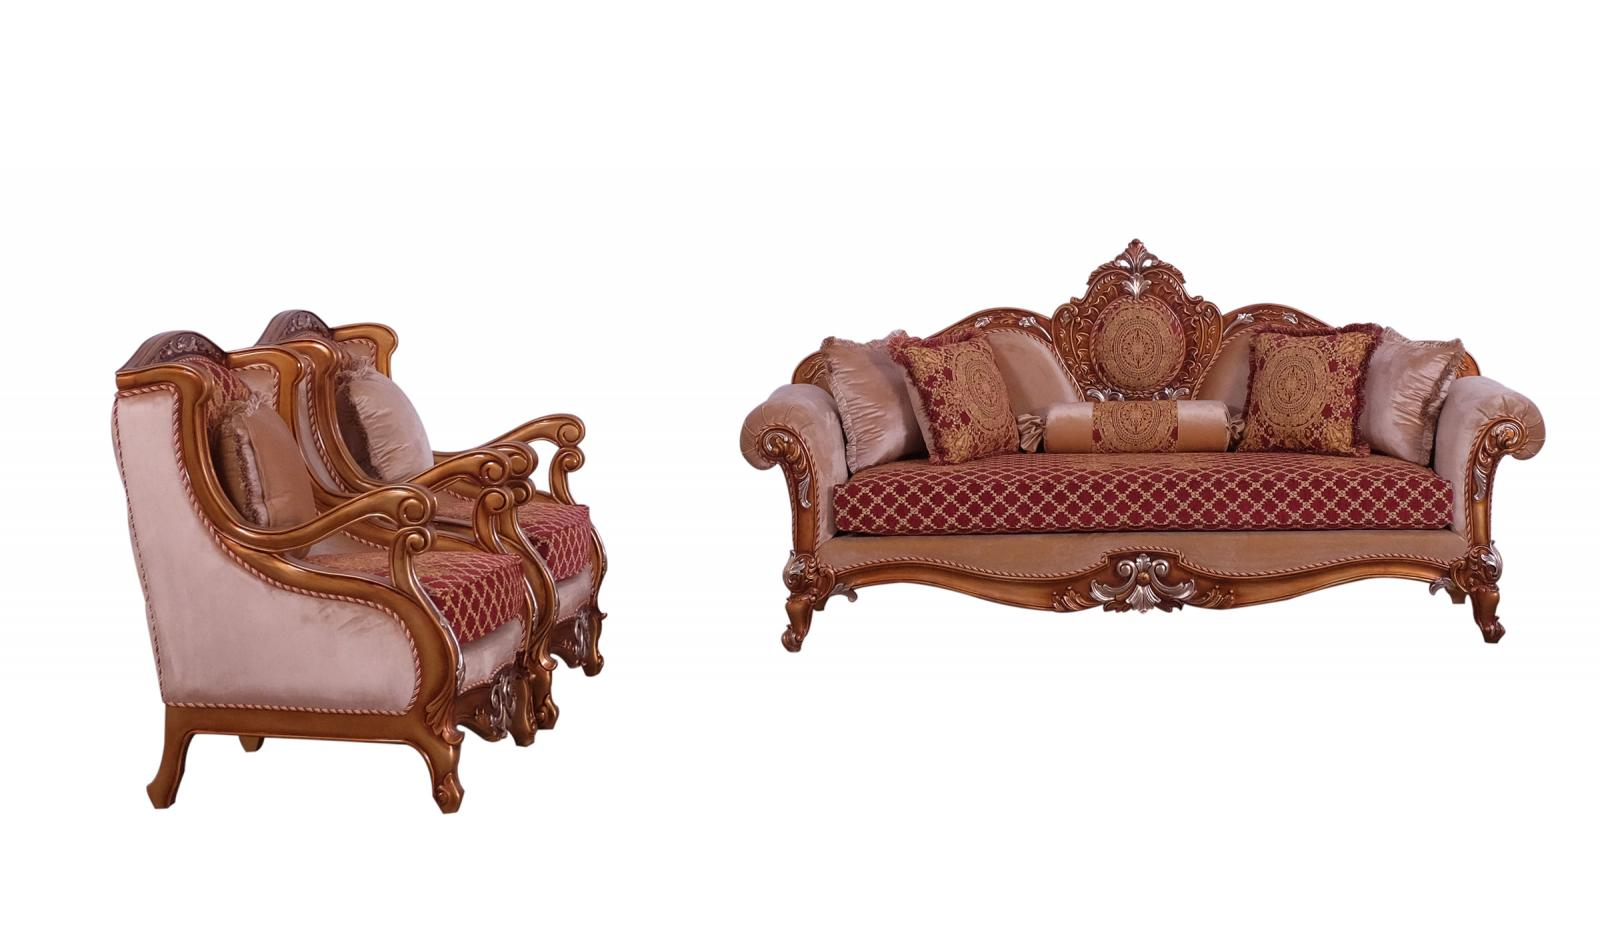 Classic  Traditional Gold  Red  Silver Wood  Solid Hardwood and Fabric Sofa Set EUROPEAN FURNITURE 41022-S-Set-3